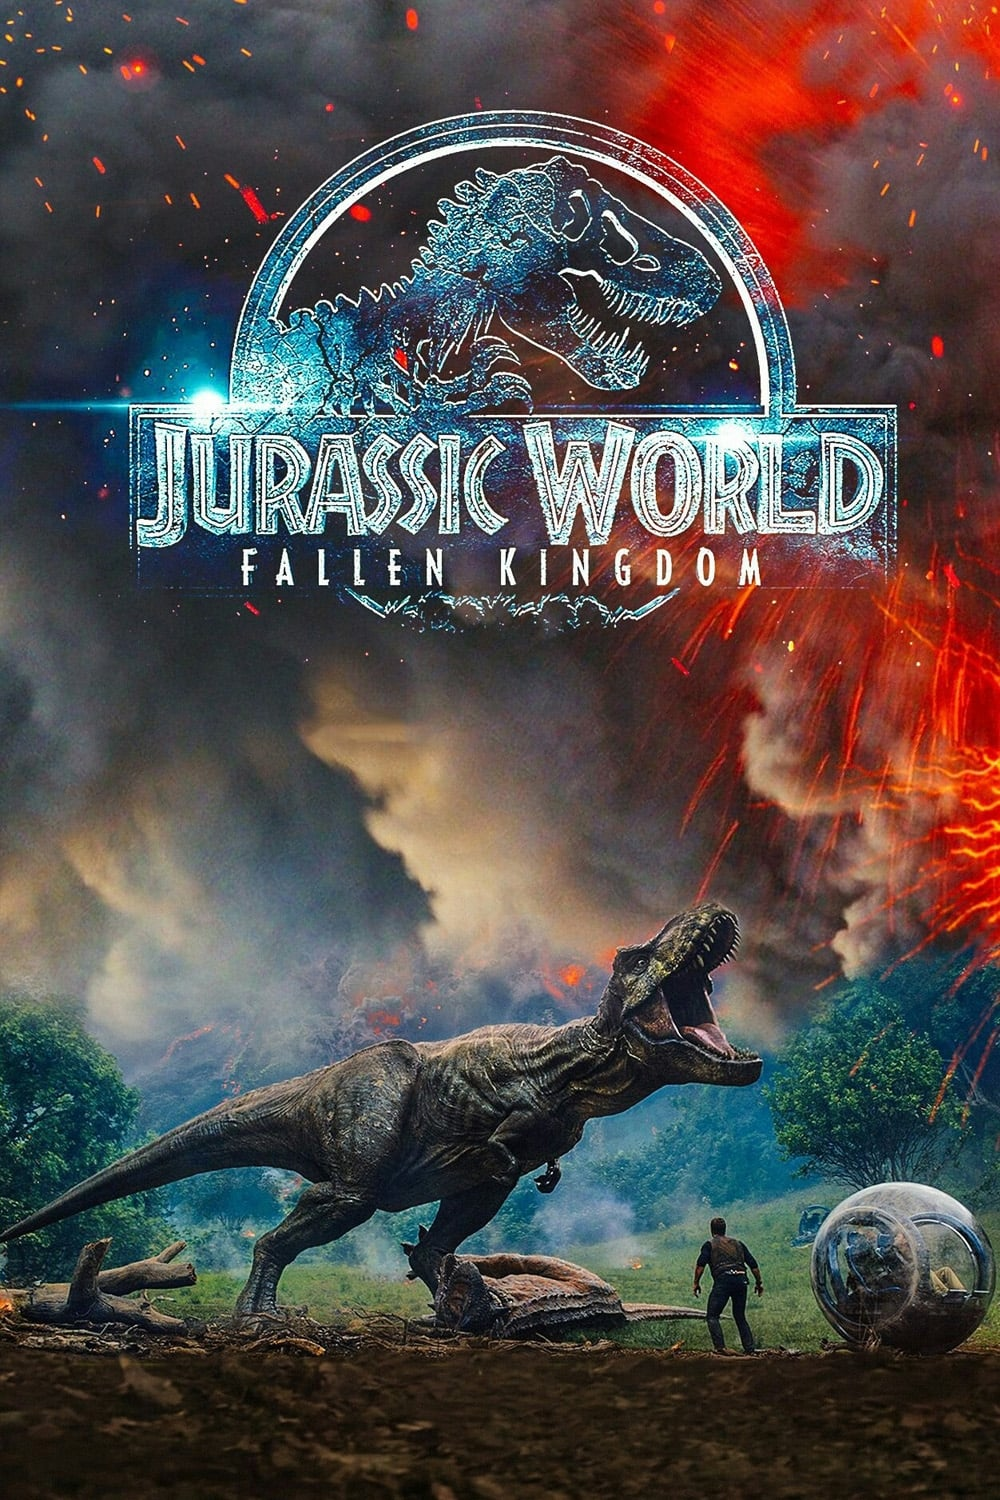 image for Jurassic World: Fallen Kingdom